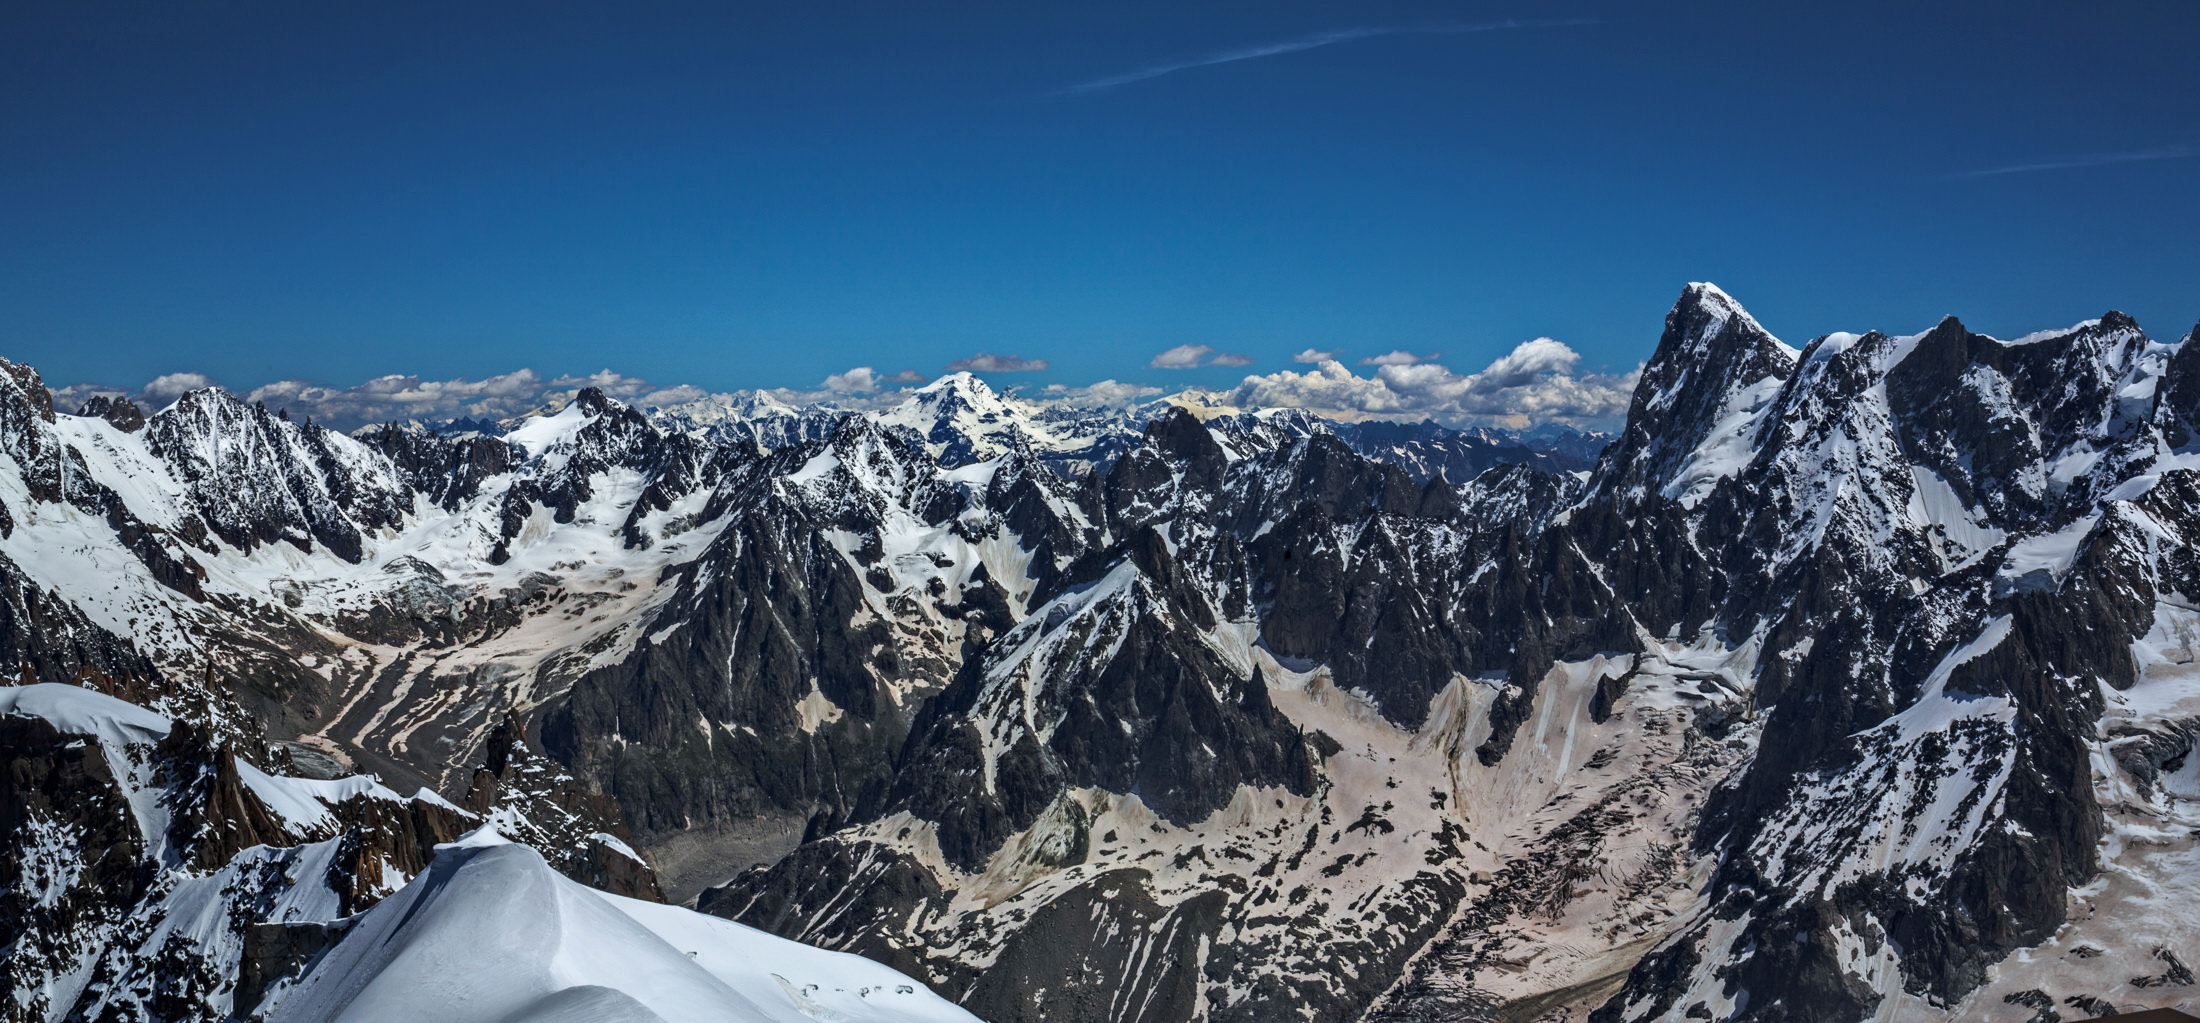 The Alps 2014 France Montblanc 14